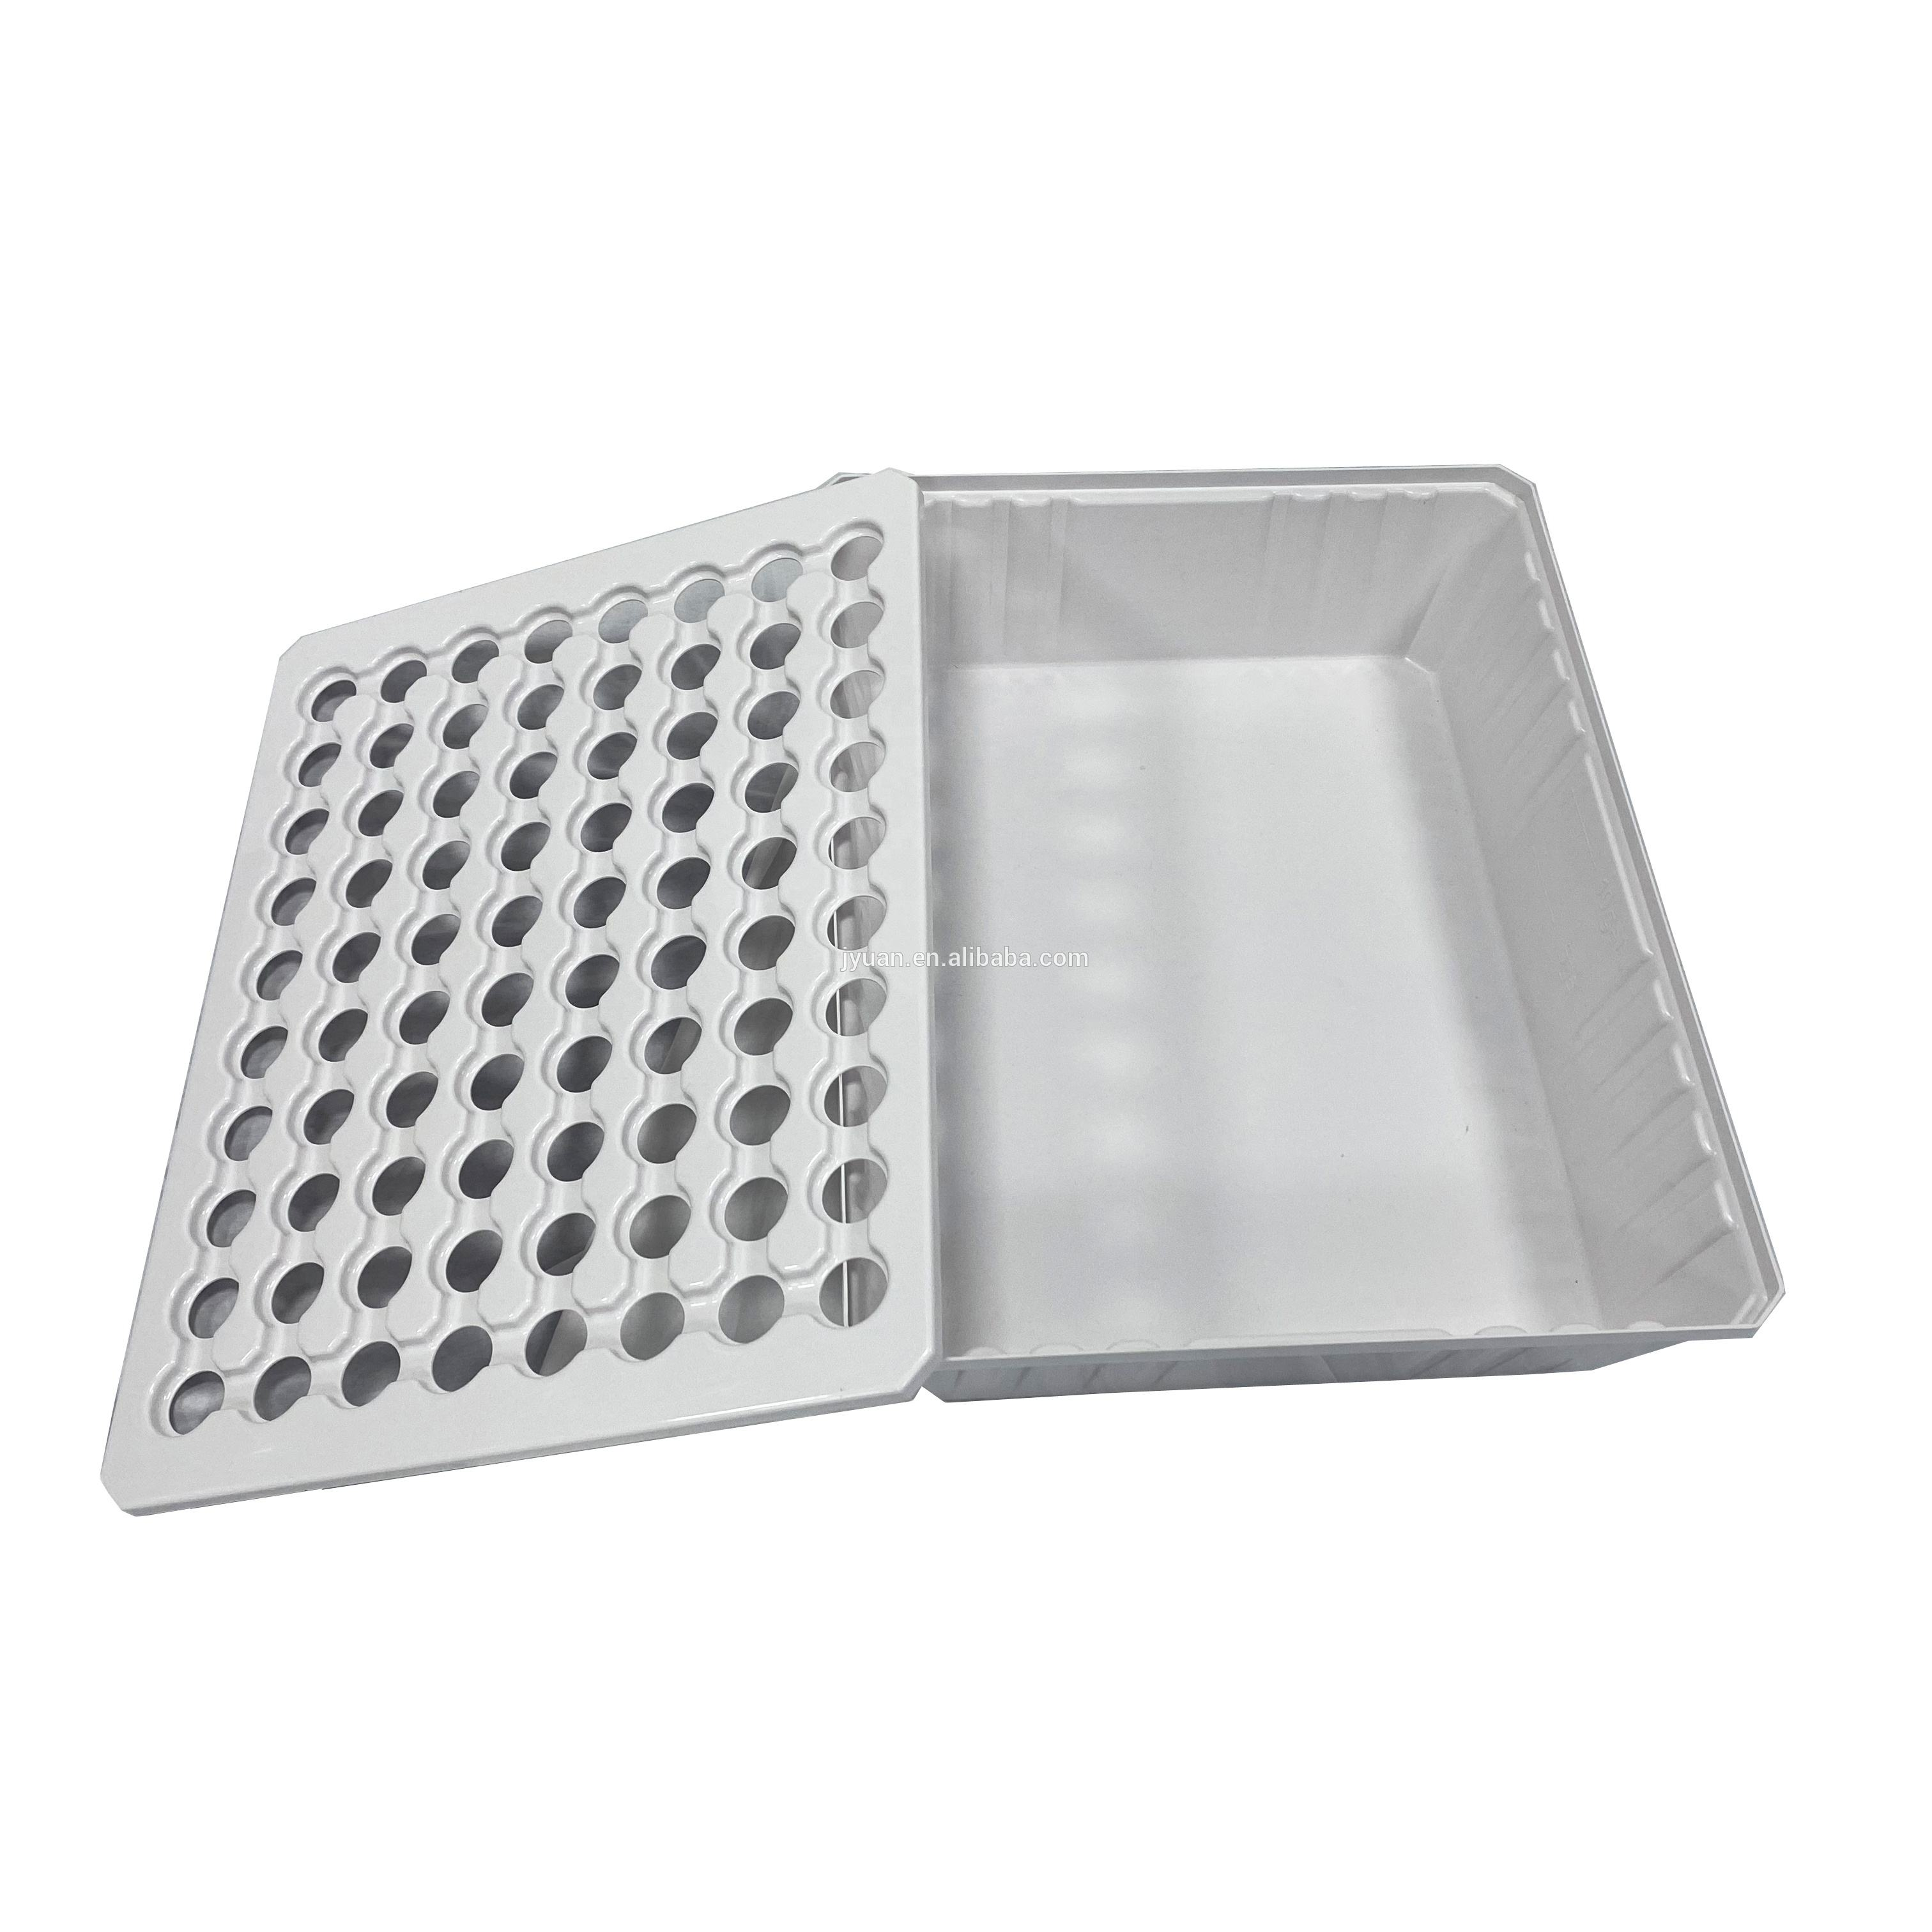 ABS Plastic Ebb And Flow Trays Grow Tray Hydroponic System Greenhouse 80 Holes Hydroponic Tray